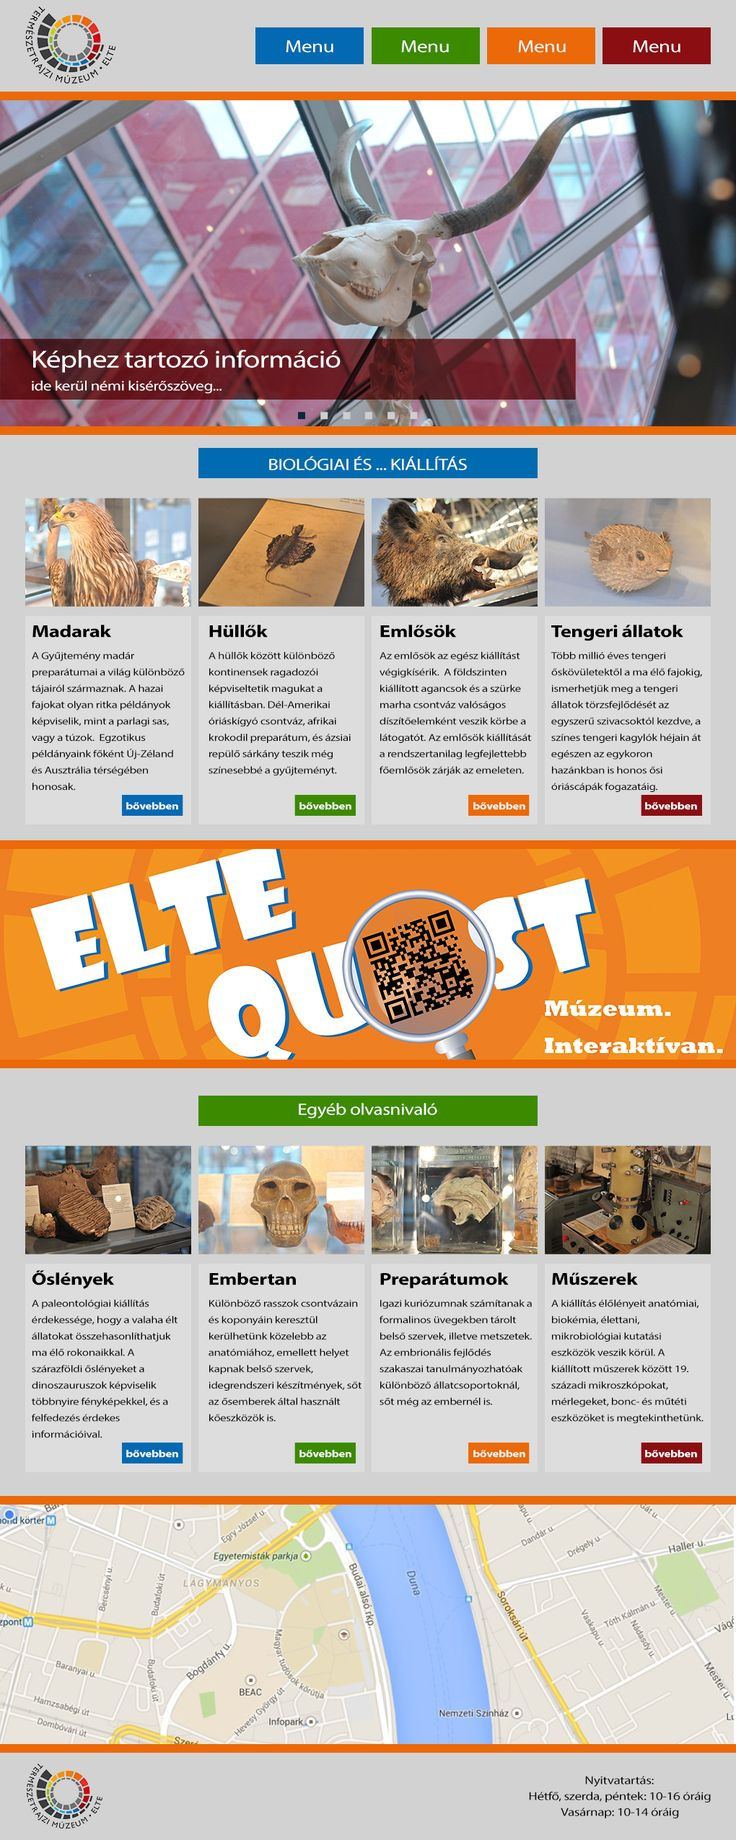 Elte quest webdesign